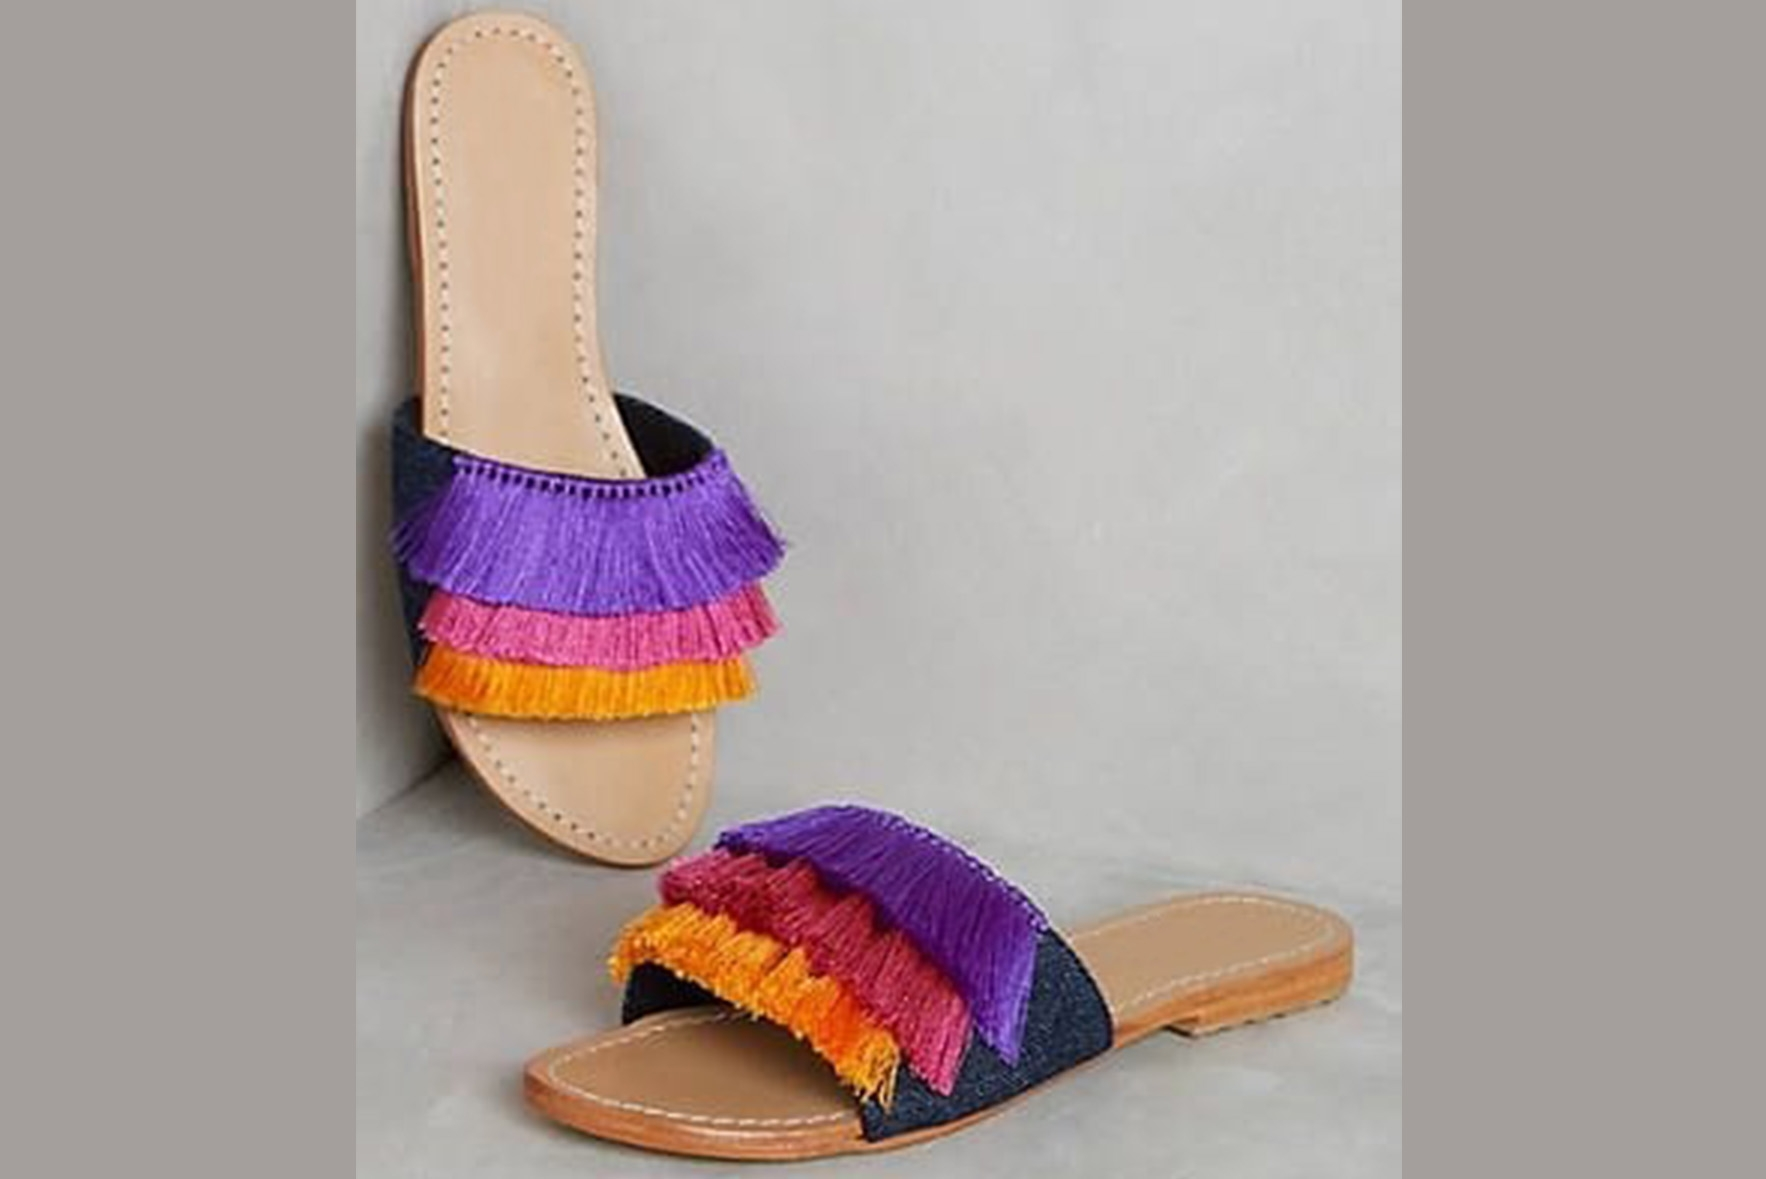 Colorbomb flats